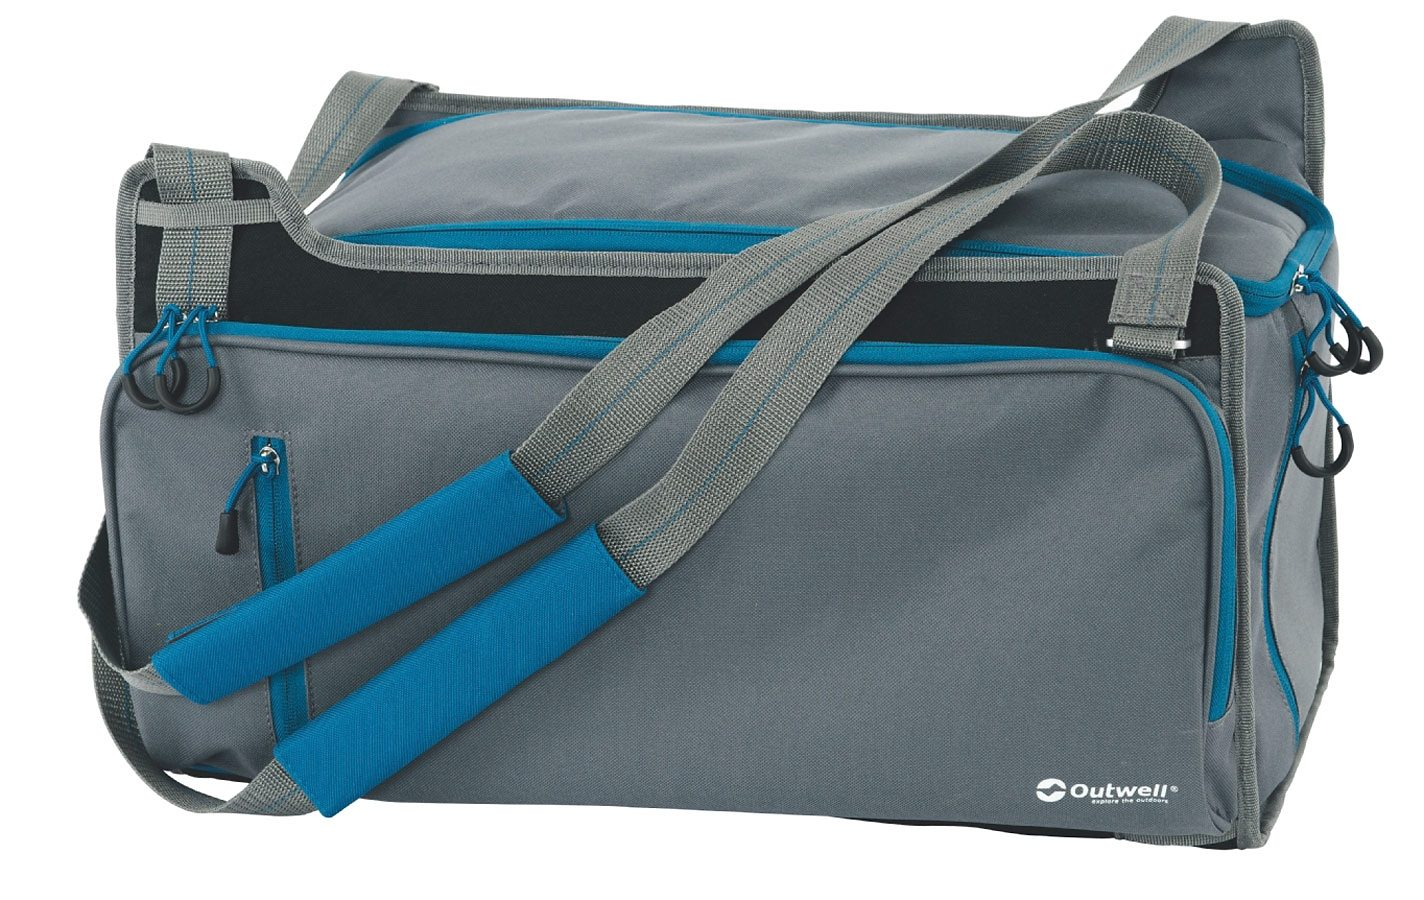 Outwell Campingkühlbox & -Tasche »Cormorant L Cool Bag«